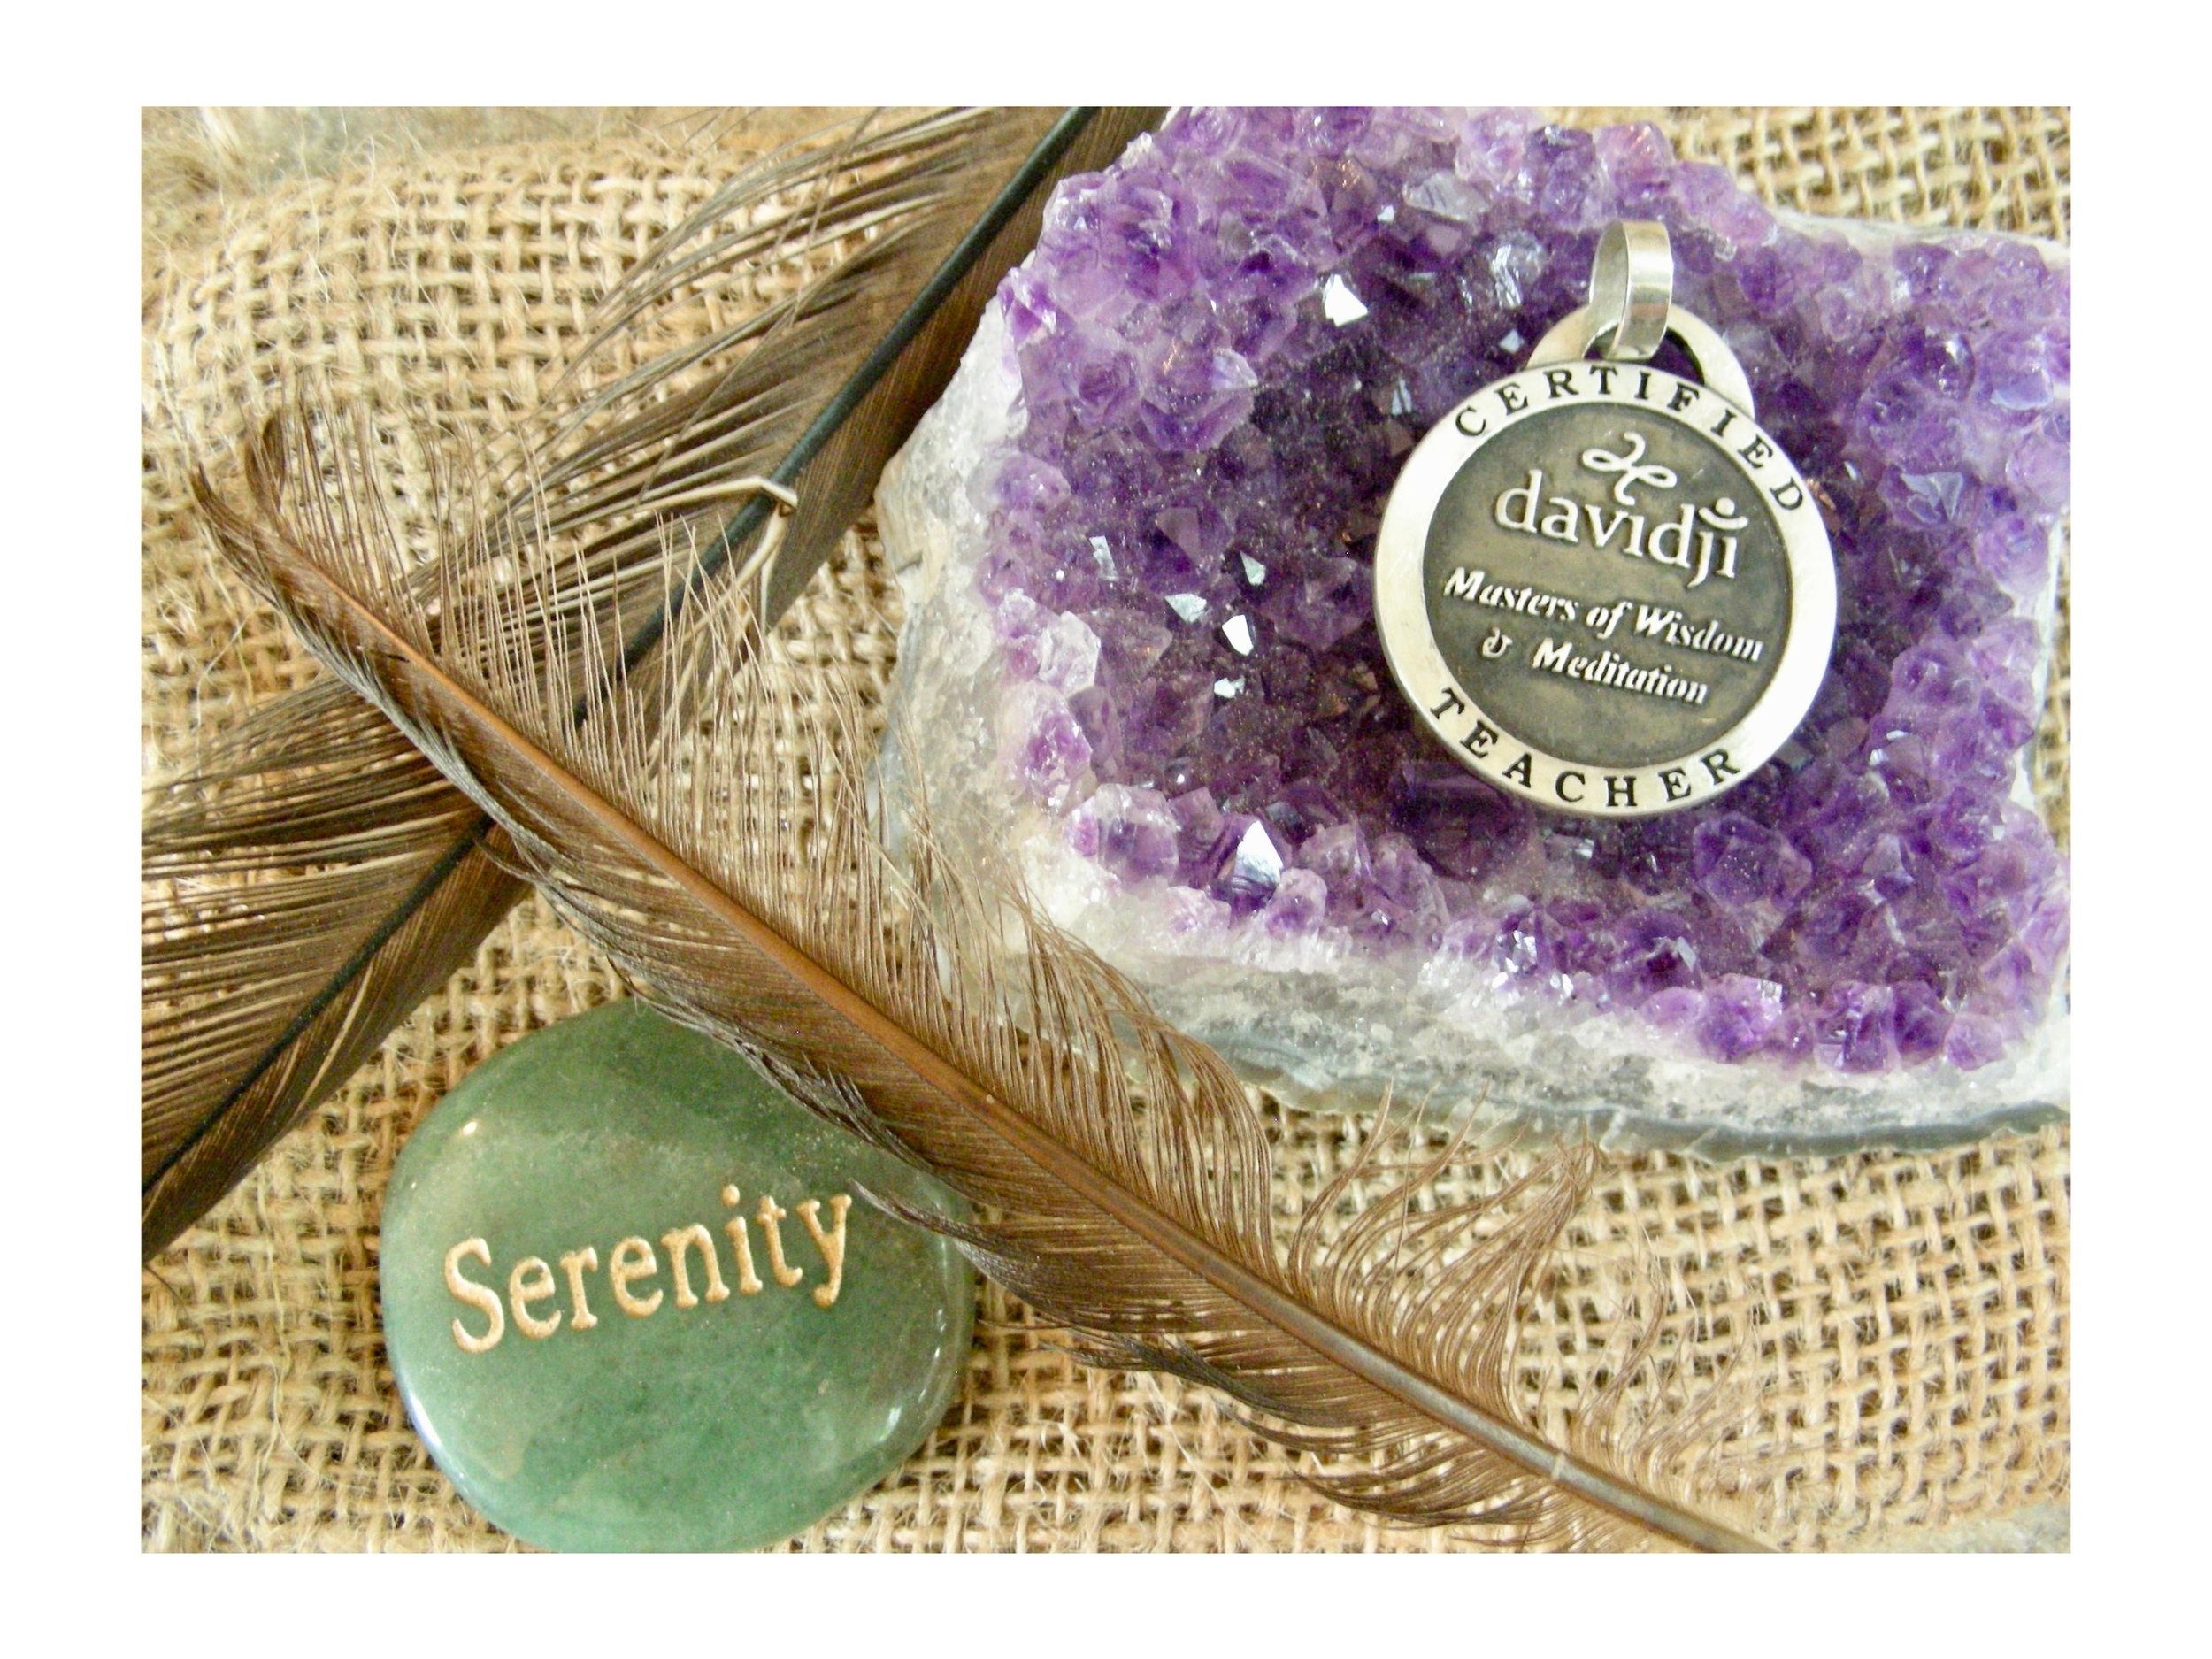 the medallion, feathers and amethyst stone are Prized reminders of my initial davidji meditation teacher training. The Serenity stone was given to me at the event in 2014 where the top photo was taken. Although I didn't feel it at the time, the lovely woman who gave it to me told me it was how I made her feel.